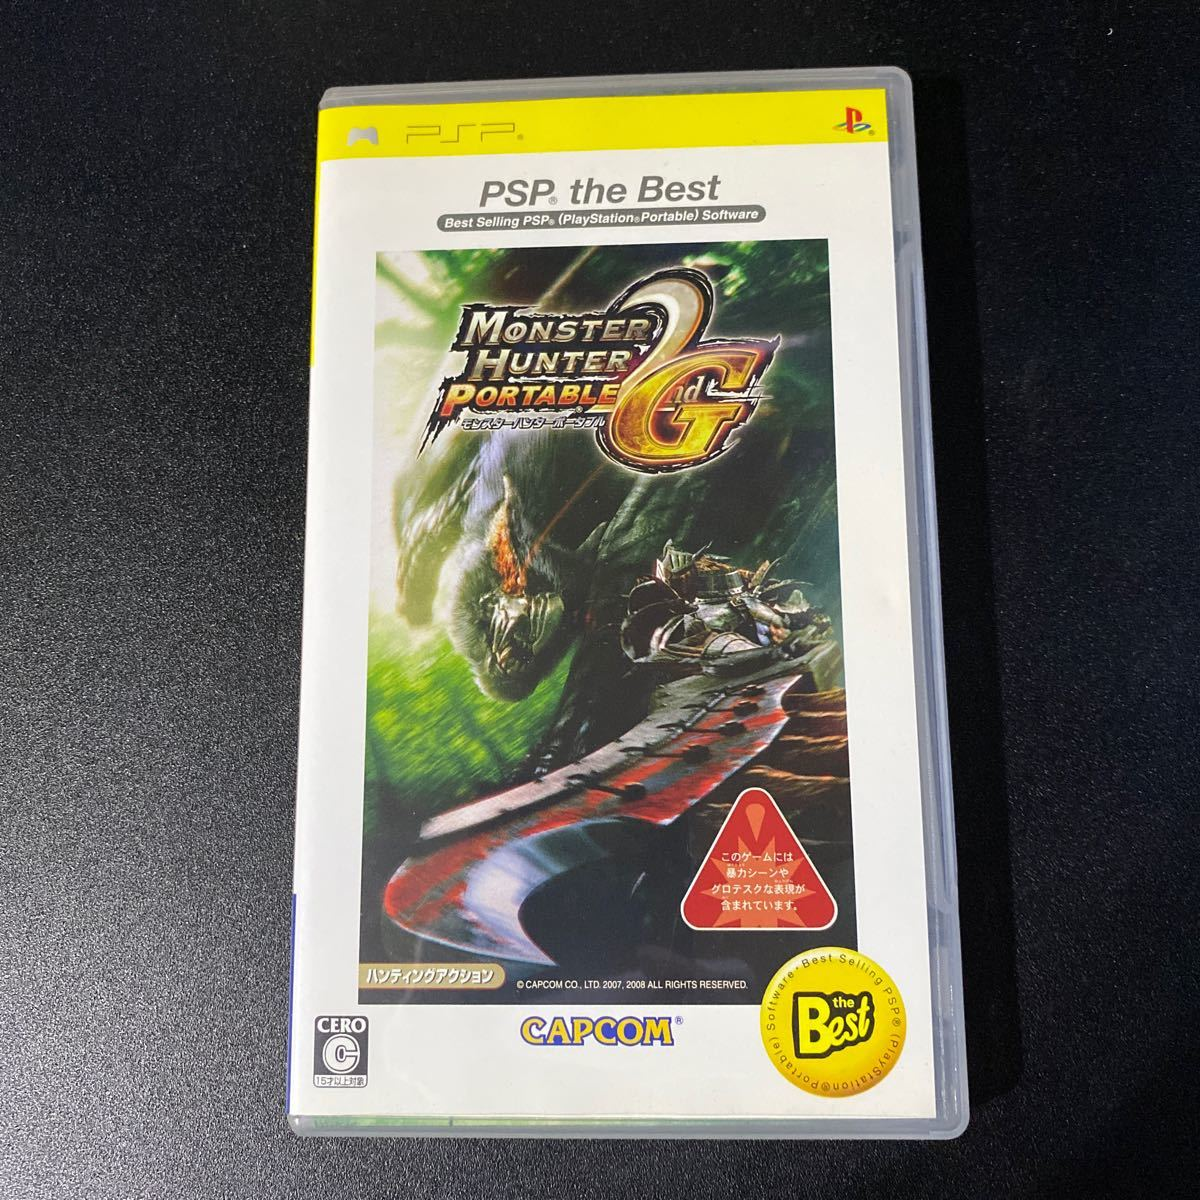 【PSP】 モンスターハンターポータブル 2nd G [PSP the Best]